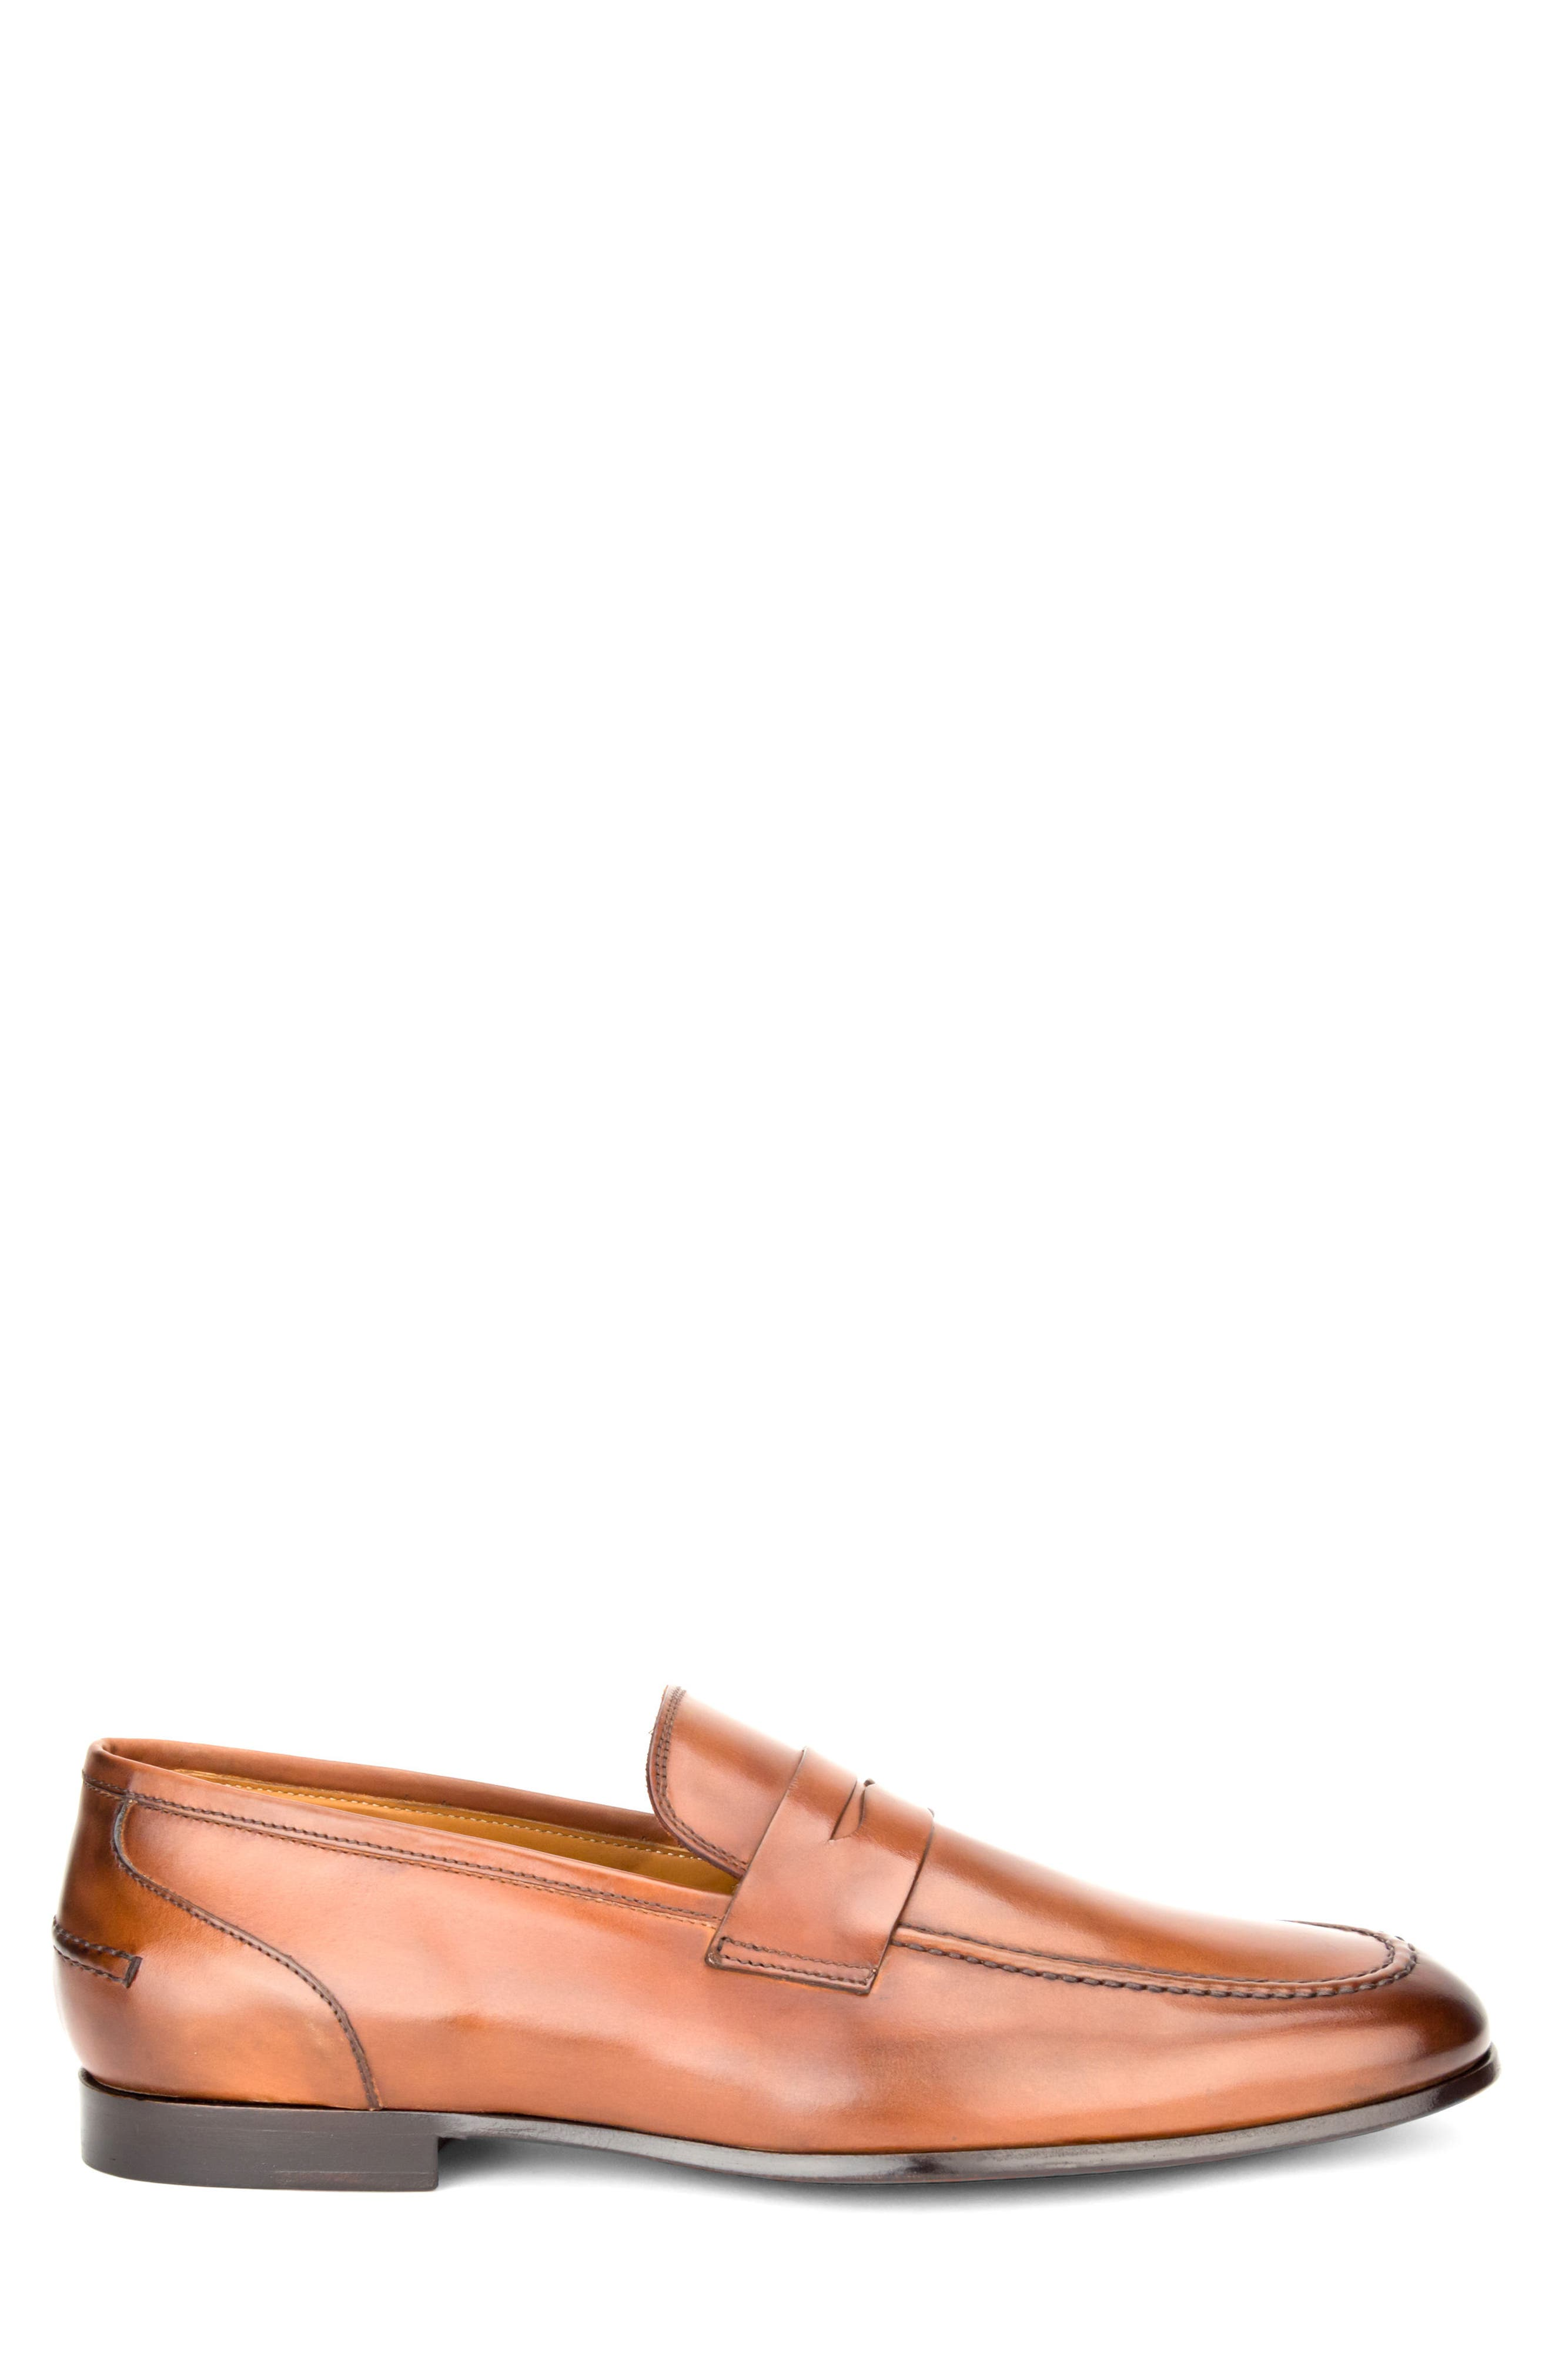 Coleman Apron Toe Penny Loafer,                             Alternate thumbnail 3, color,                             Tan Leather